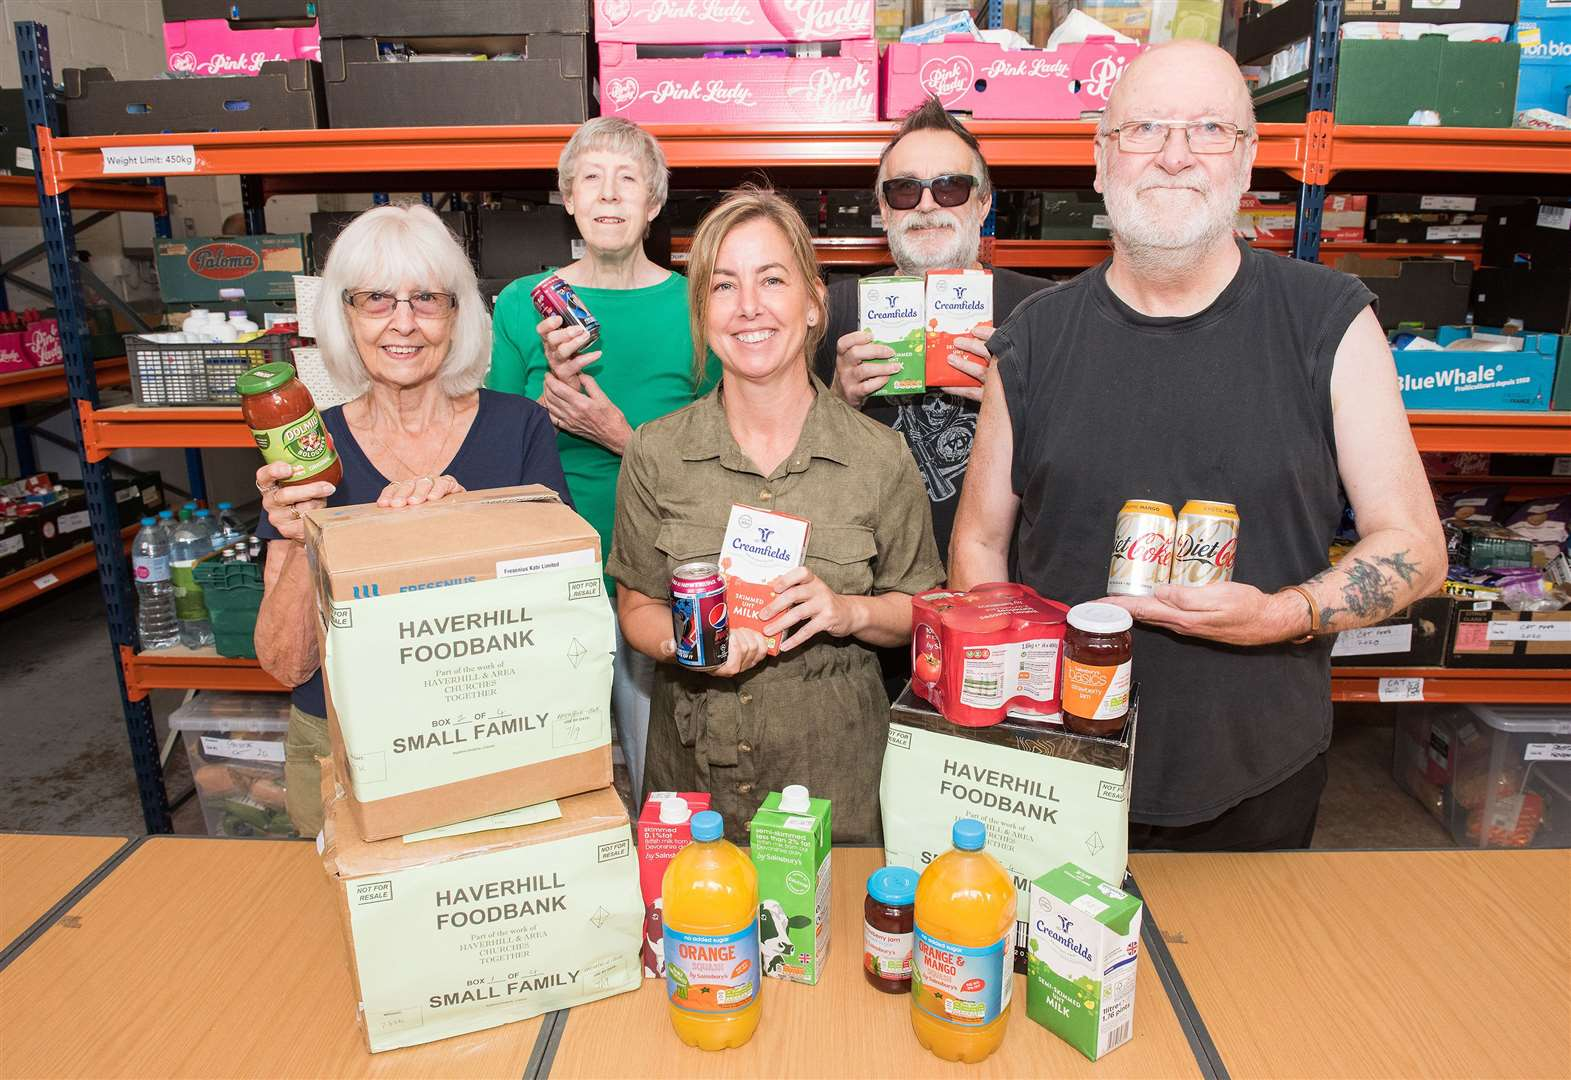 Haverhill Foodbank appealing for donations after spike in users